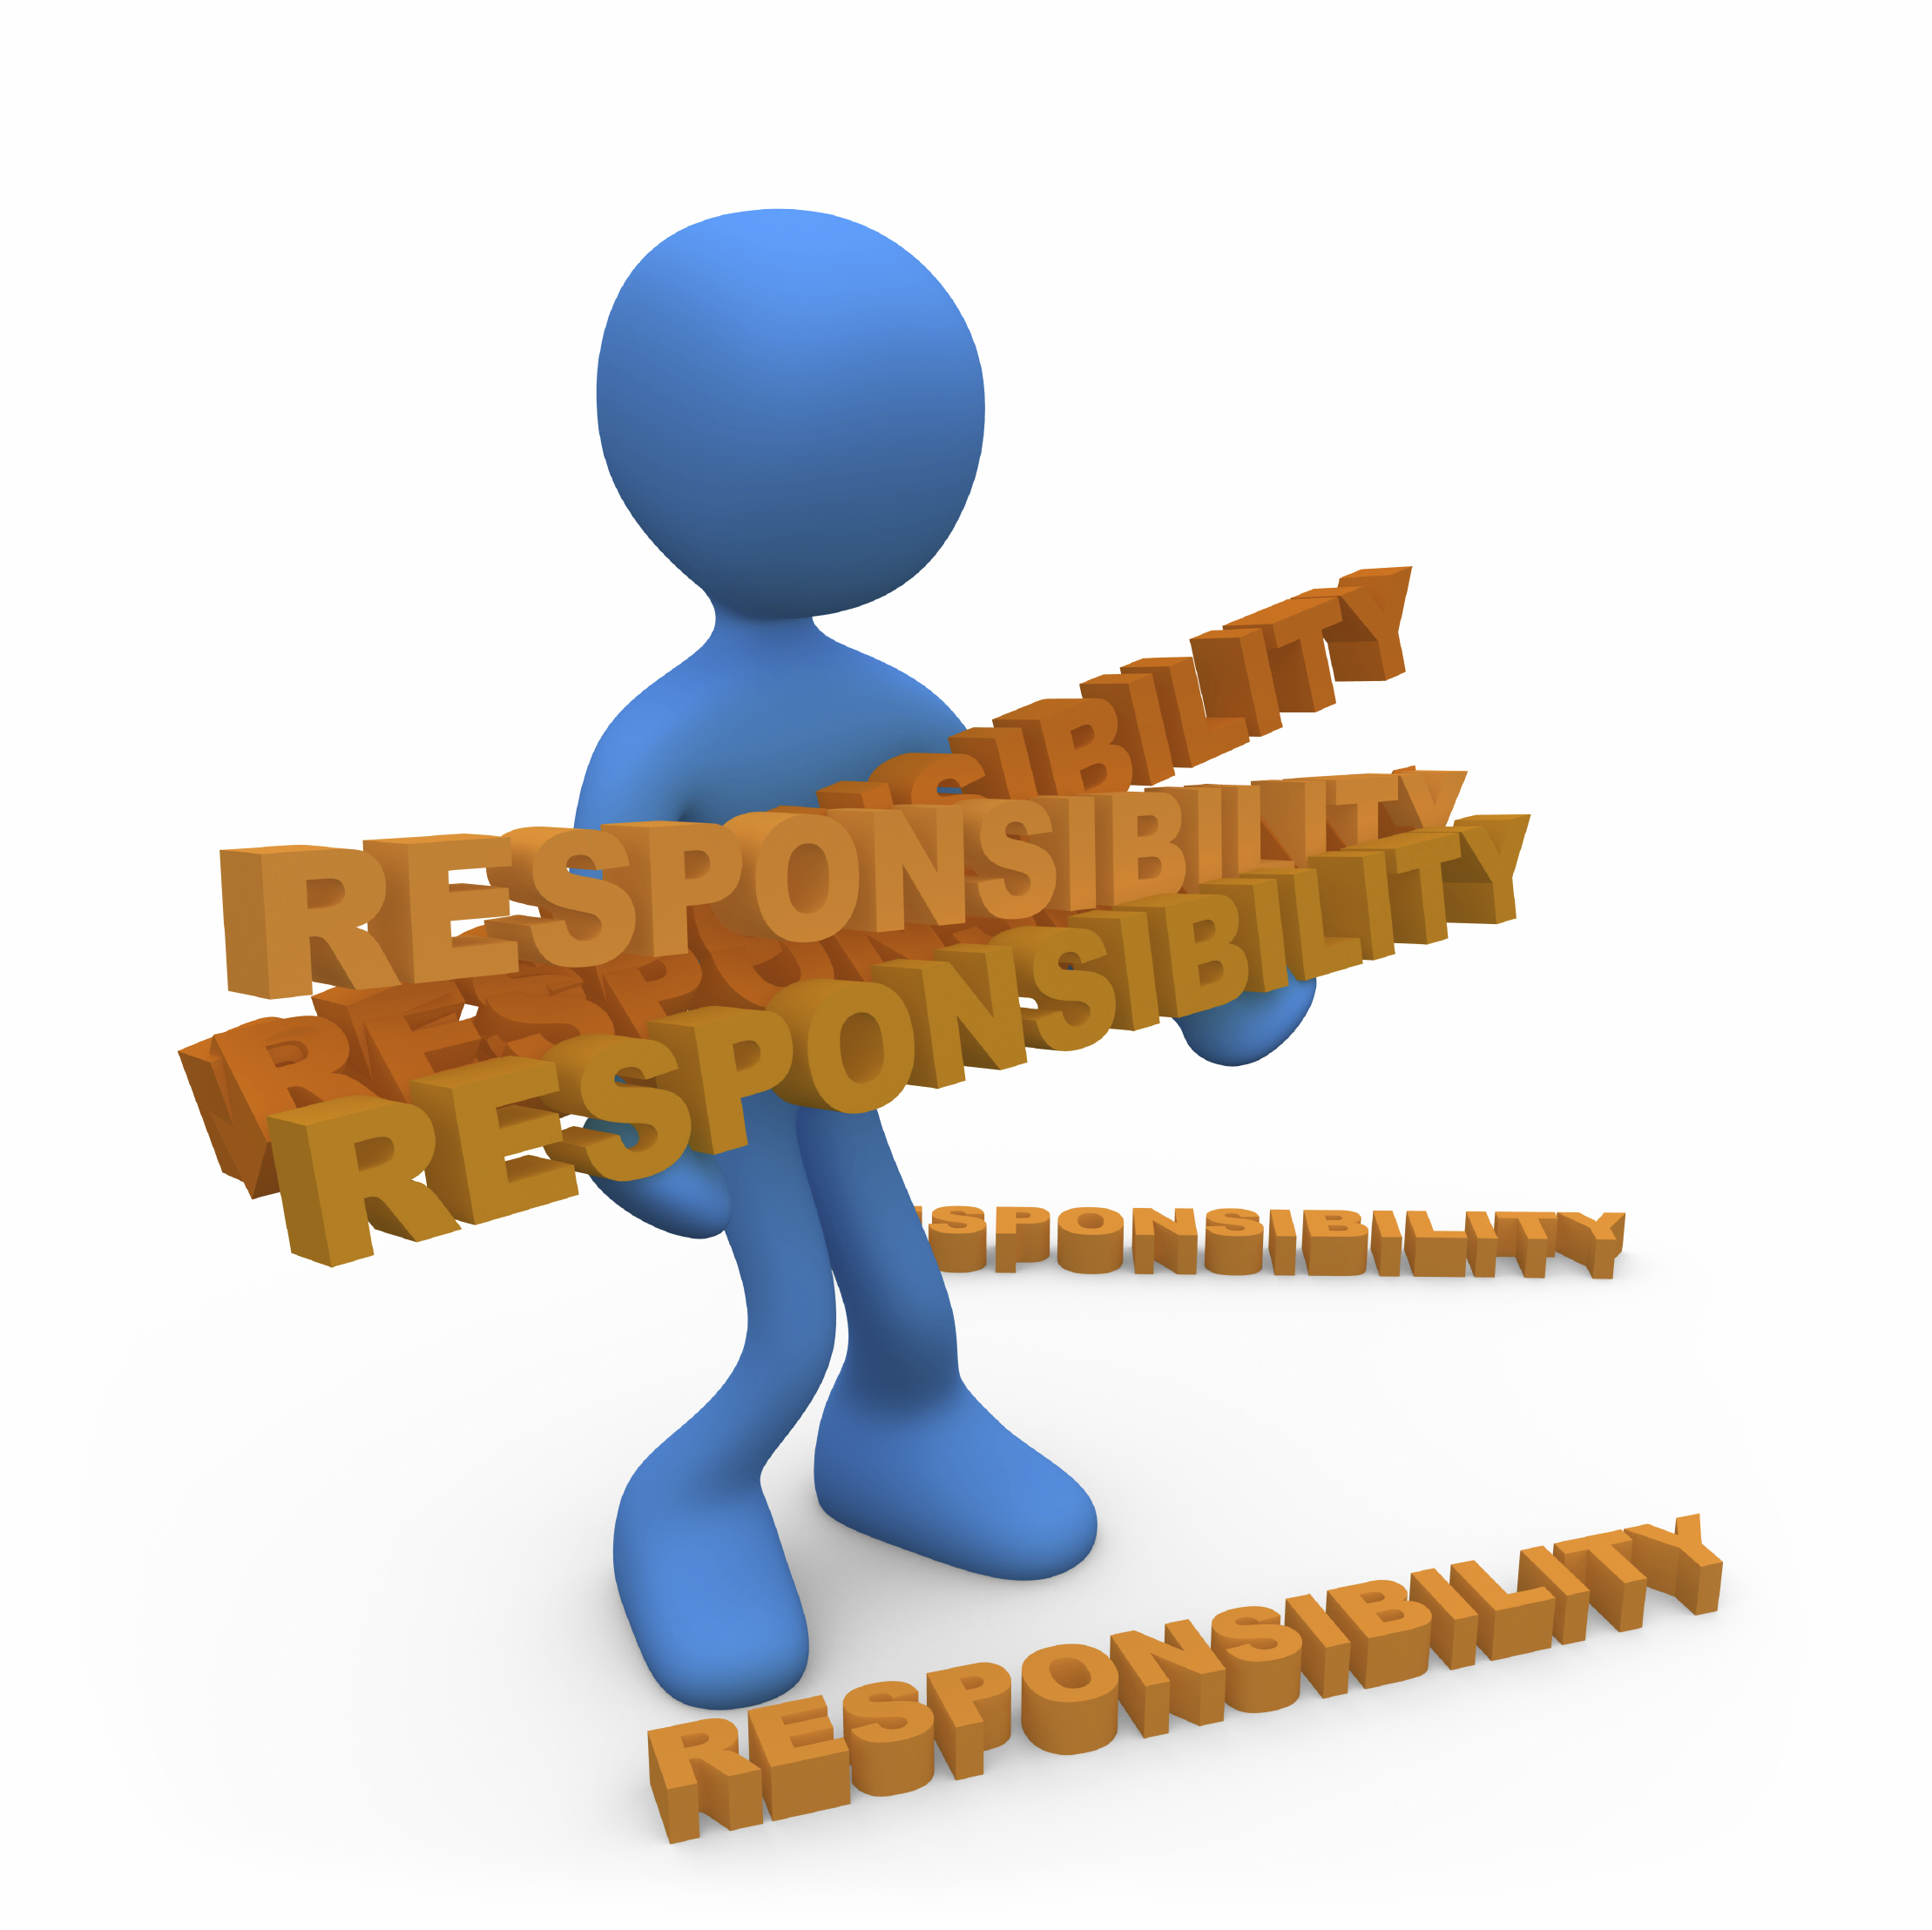 what are the roles responsibilities and 爱词霸权威在线词典,为您提供roles_and_responsibilities的中文意思,roles_and_responsibilities的用法讲解,roles_and_responsibilities的读音,roles_and_responsibilities的同义词.